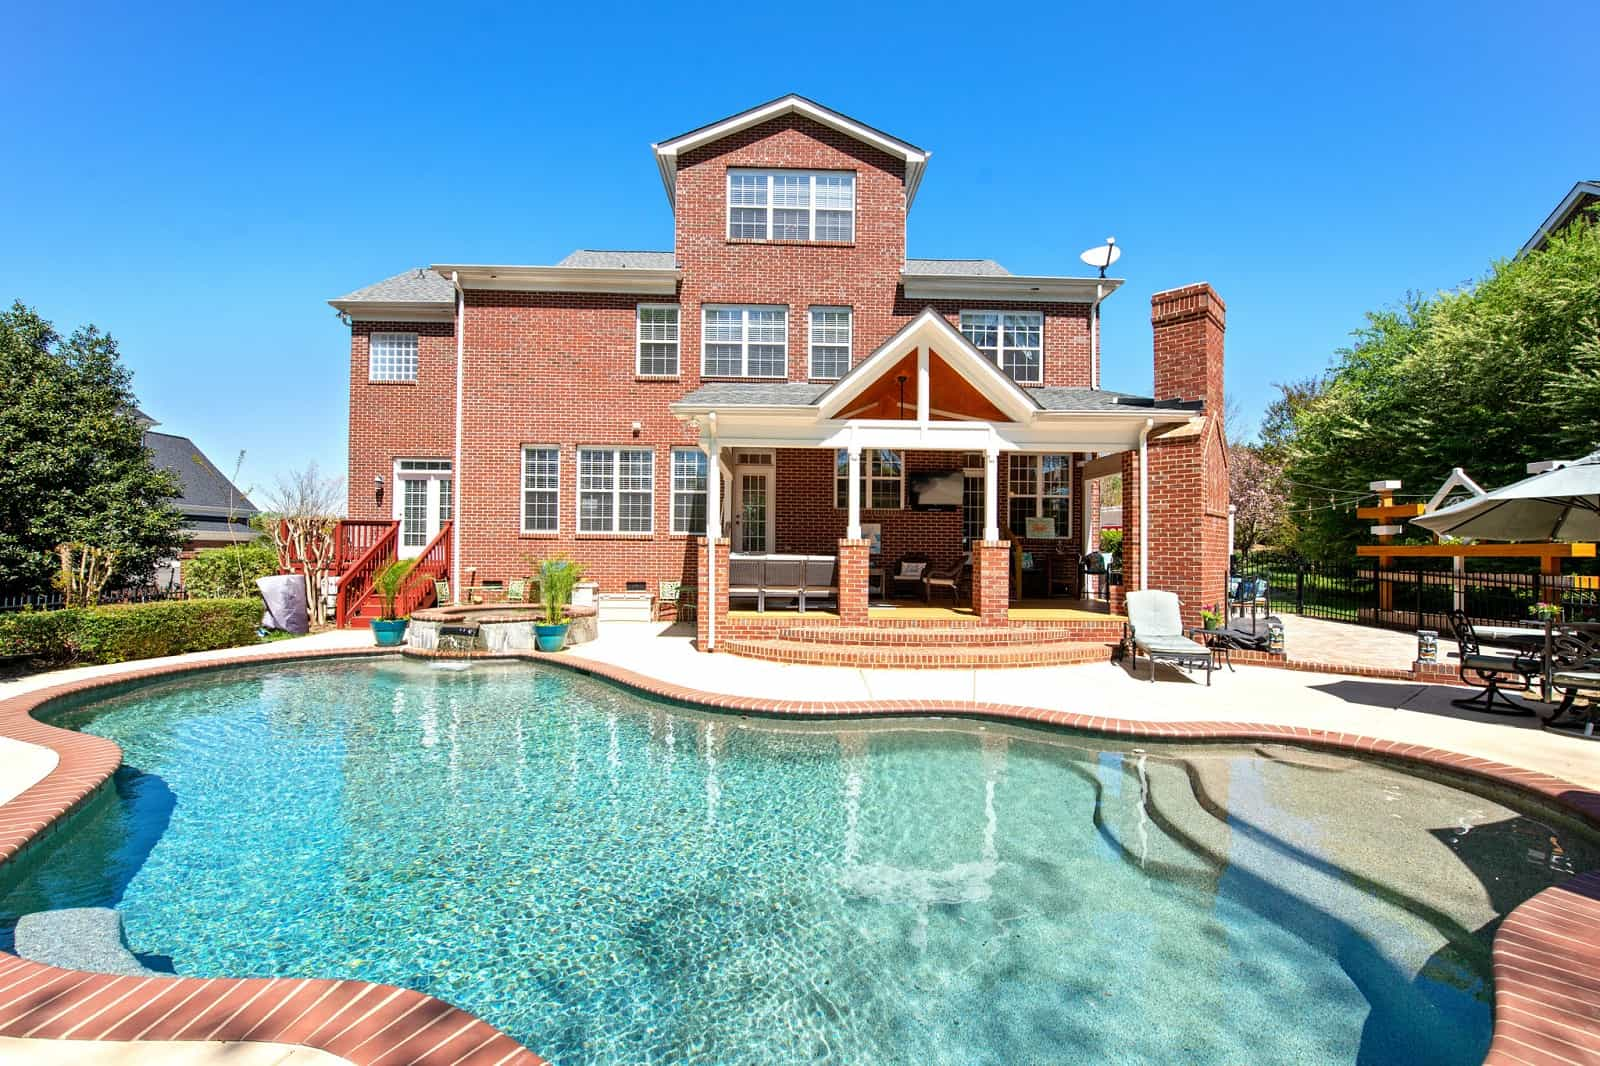 Real Estate Photography in Matthews - NC - USA - Front View